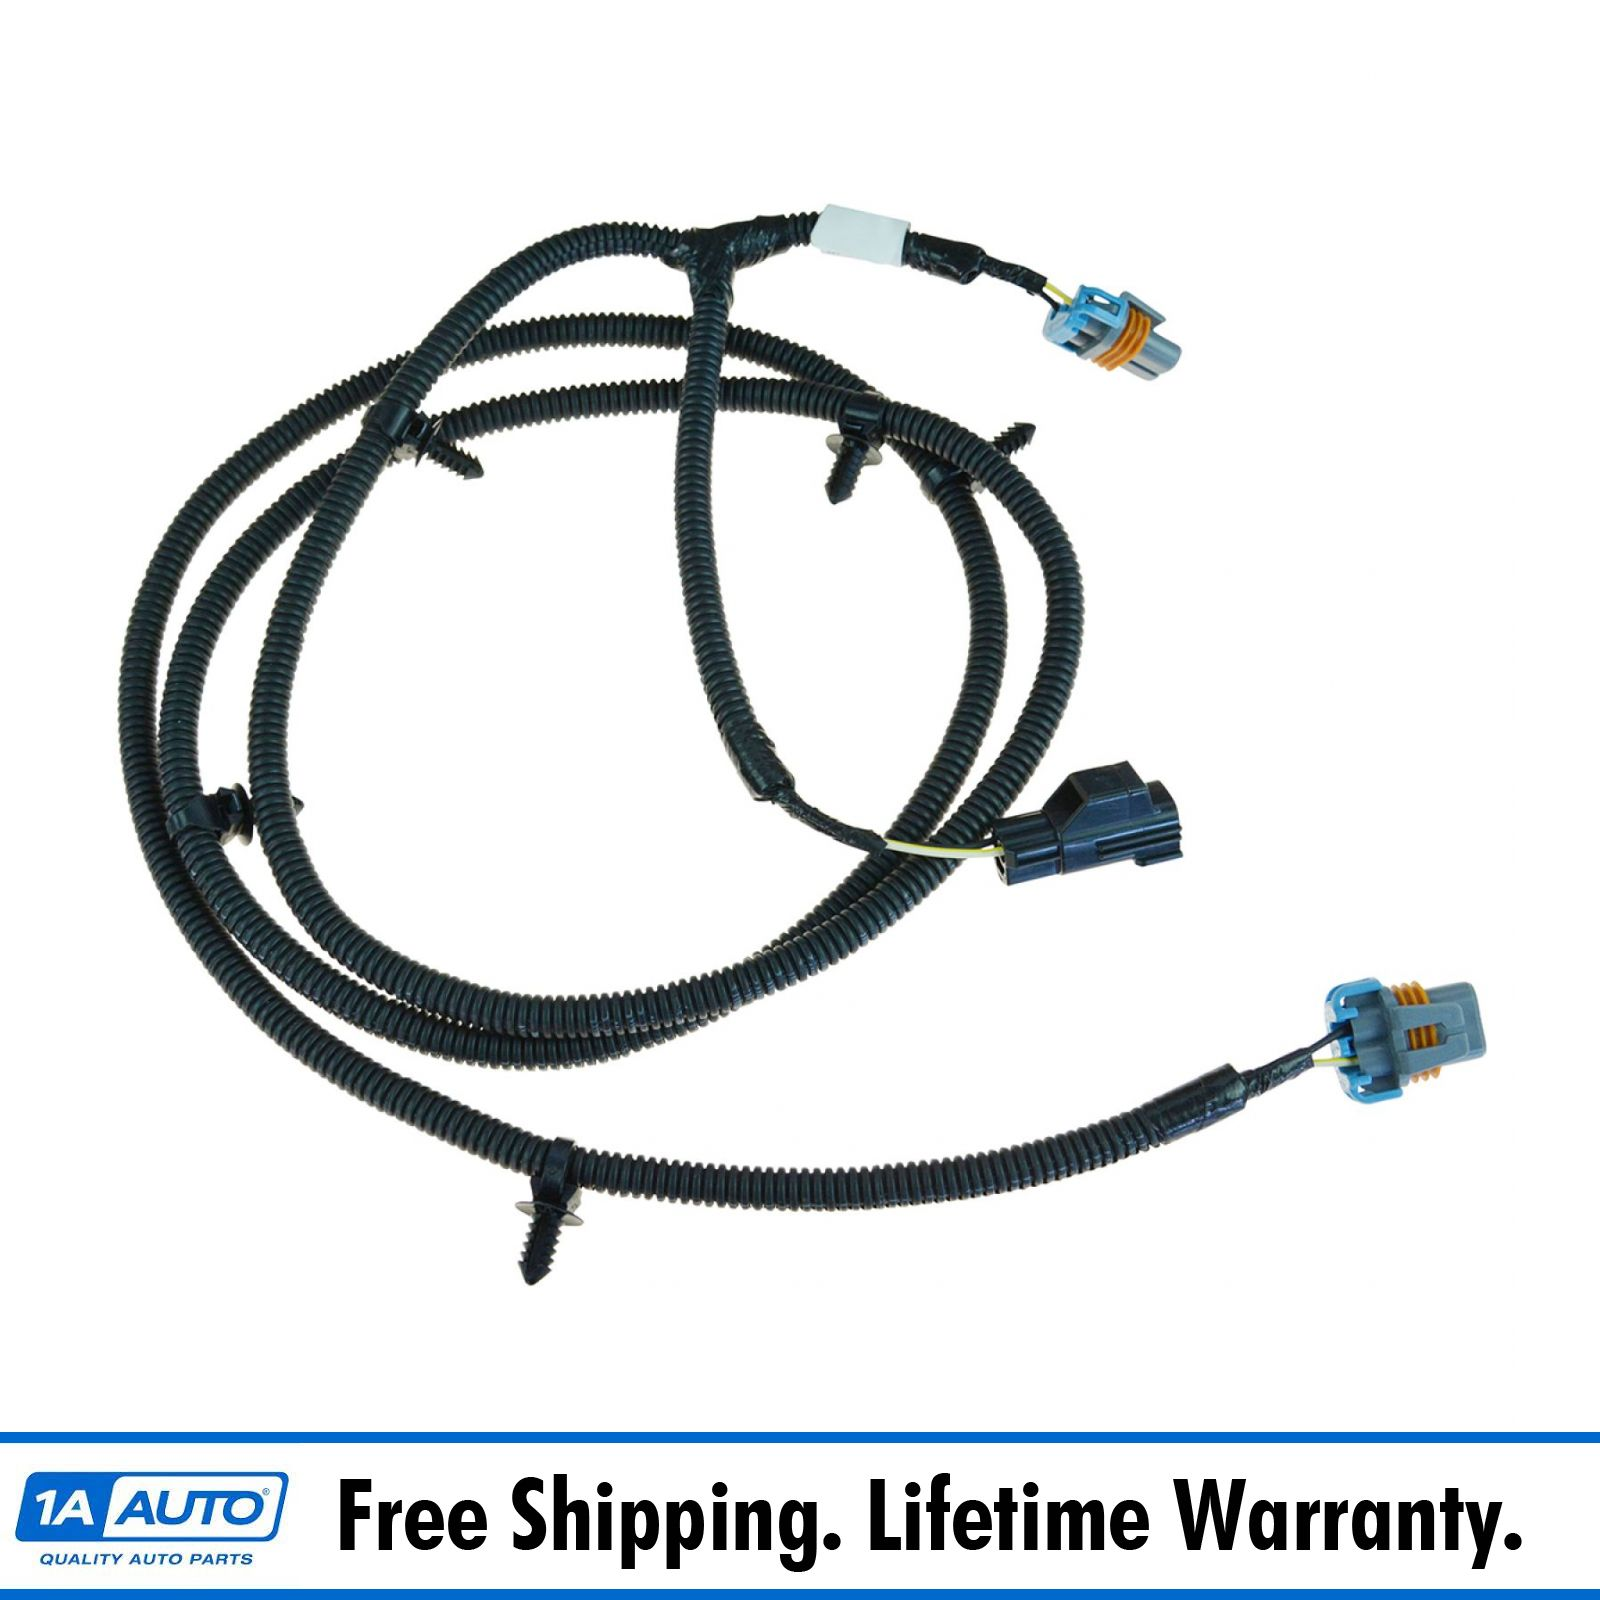 details about mopar fog light wiring harness lh left rh right for dodge ram 1500 2500 3500 2001 Dodge Ram 1500 Wiring Harness